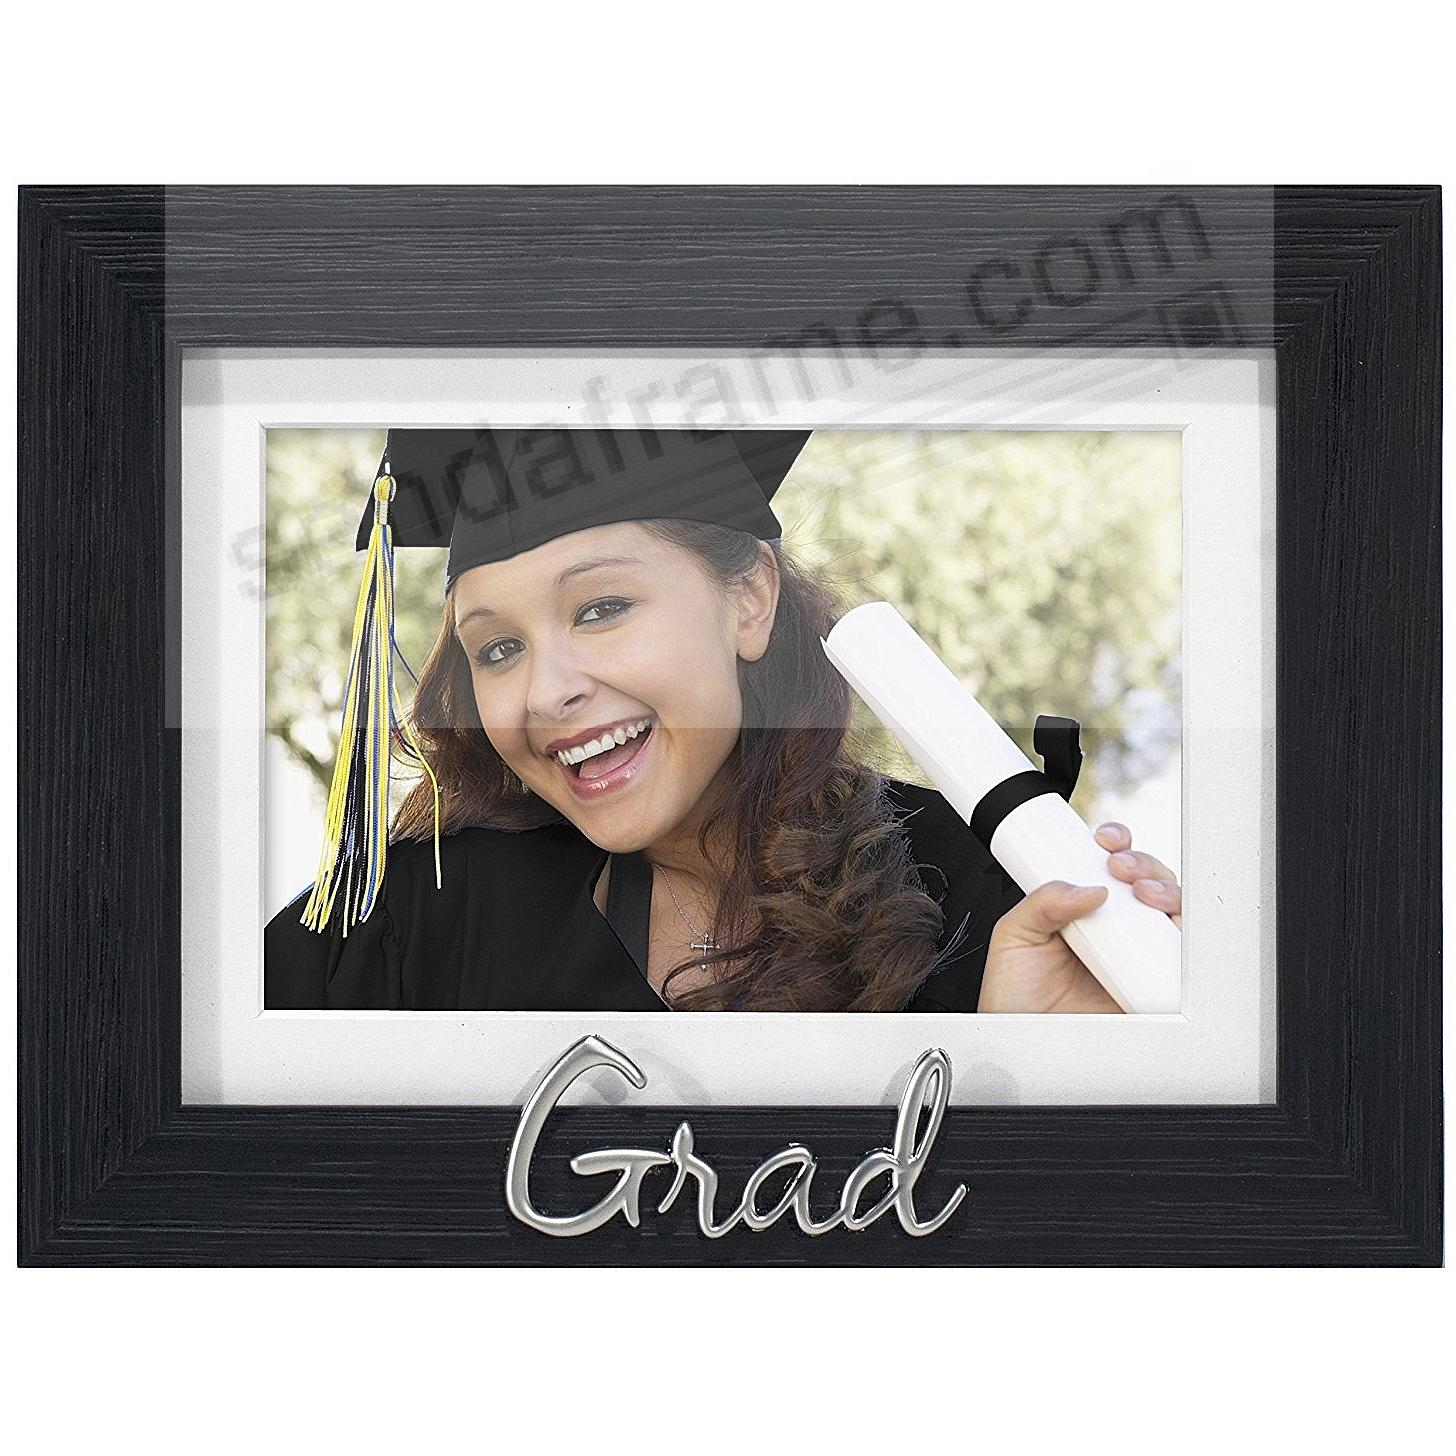 GRAD Black matted 7x5/6x4 keepsake frame